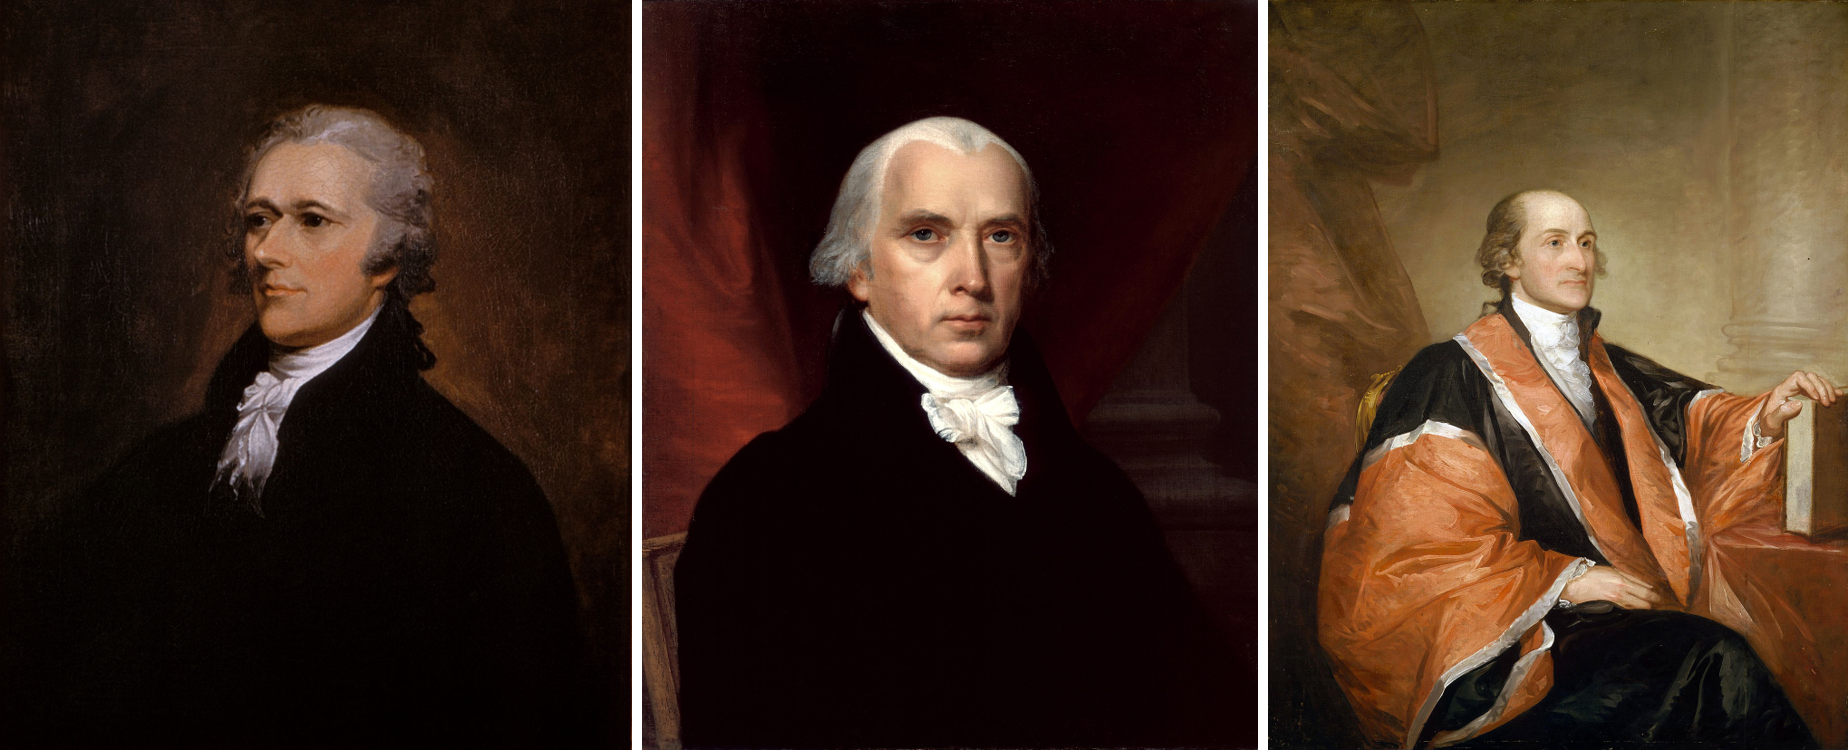 Alexander Hamilton (painted by John Trumbull), James Madison (painted by John Vanderlyn), and John Jay (painted by Gilbert Stuart), authors of The Federalist Papers (Wikimedia)